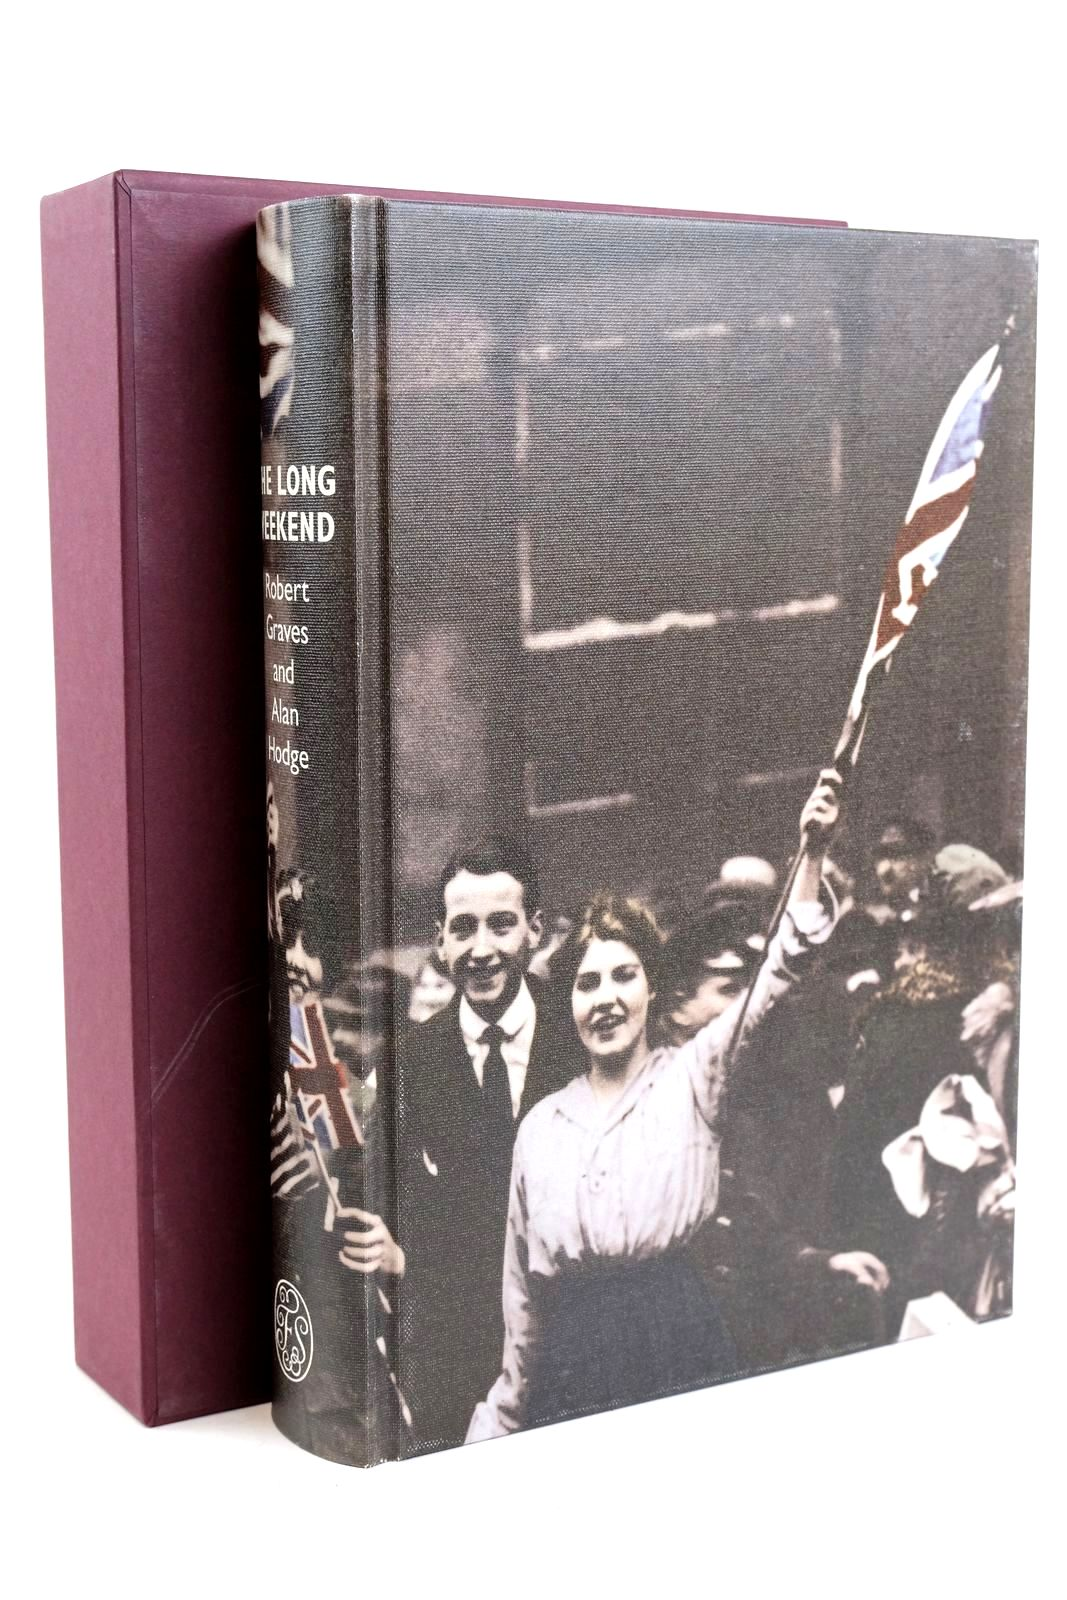 Photo of THE LONG WEEKEND written by Graves, Robert Hodge, Alan published by Folio Society (STOCK CODE: 1319077)  for sale by Stella & Rose's Books